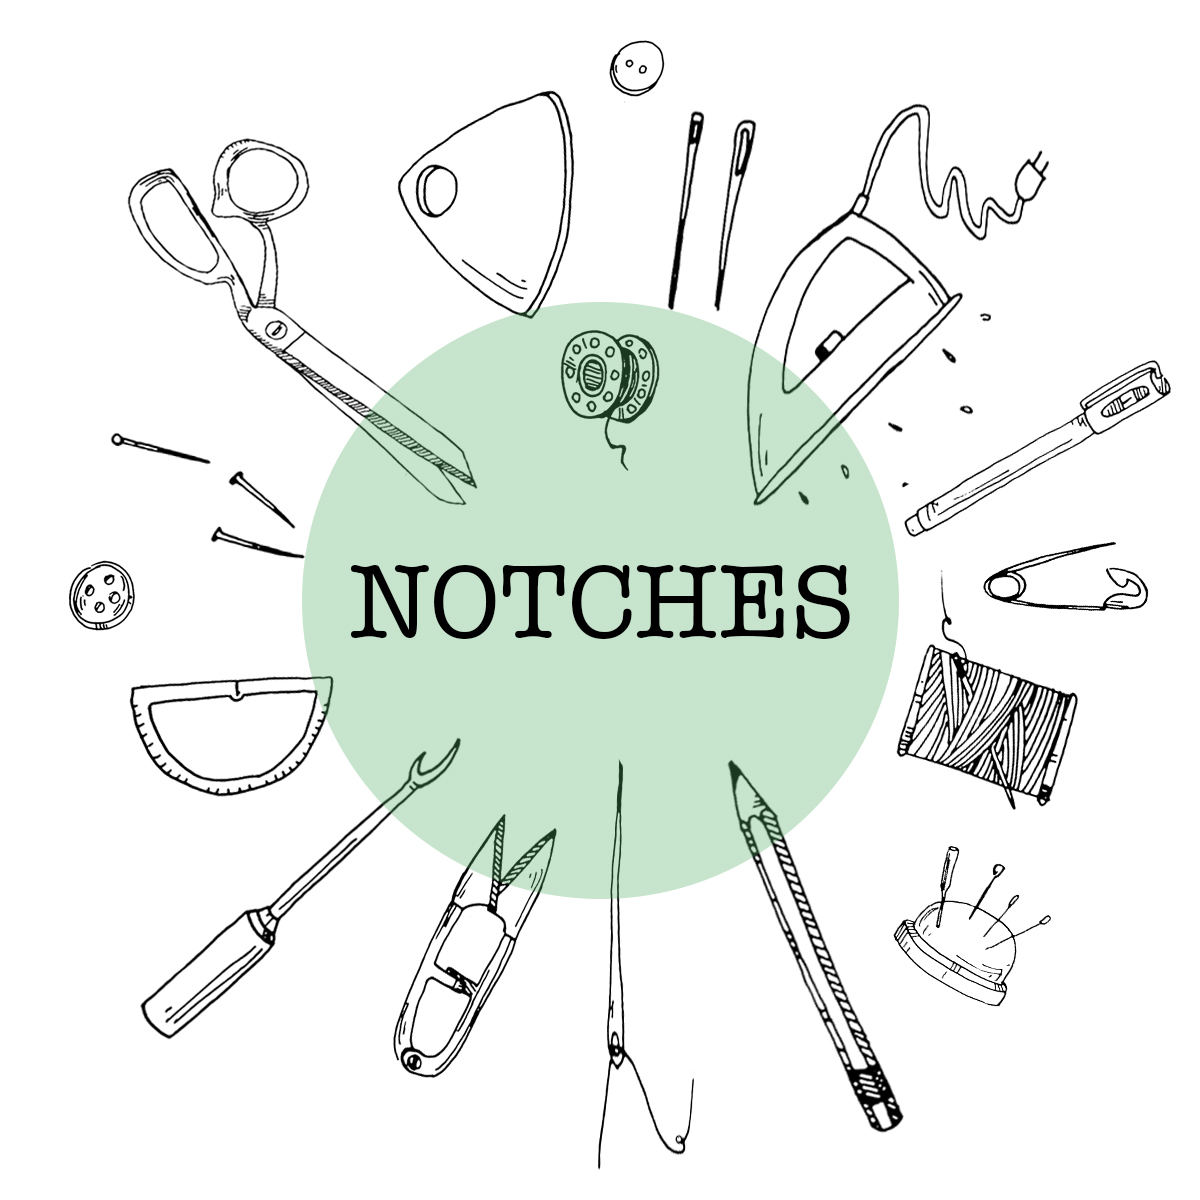 How we should use notches?